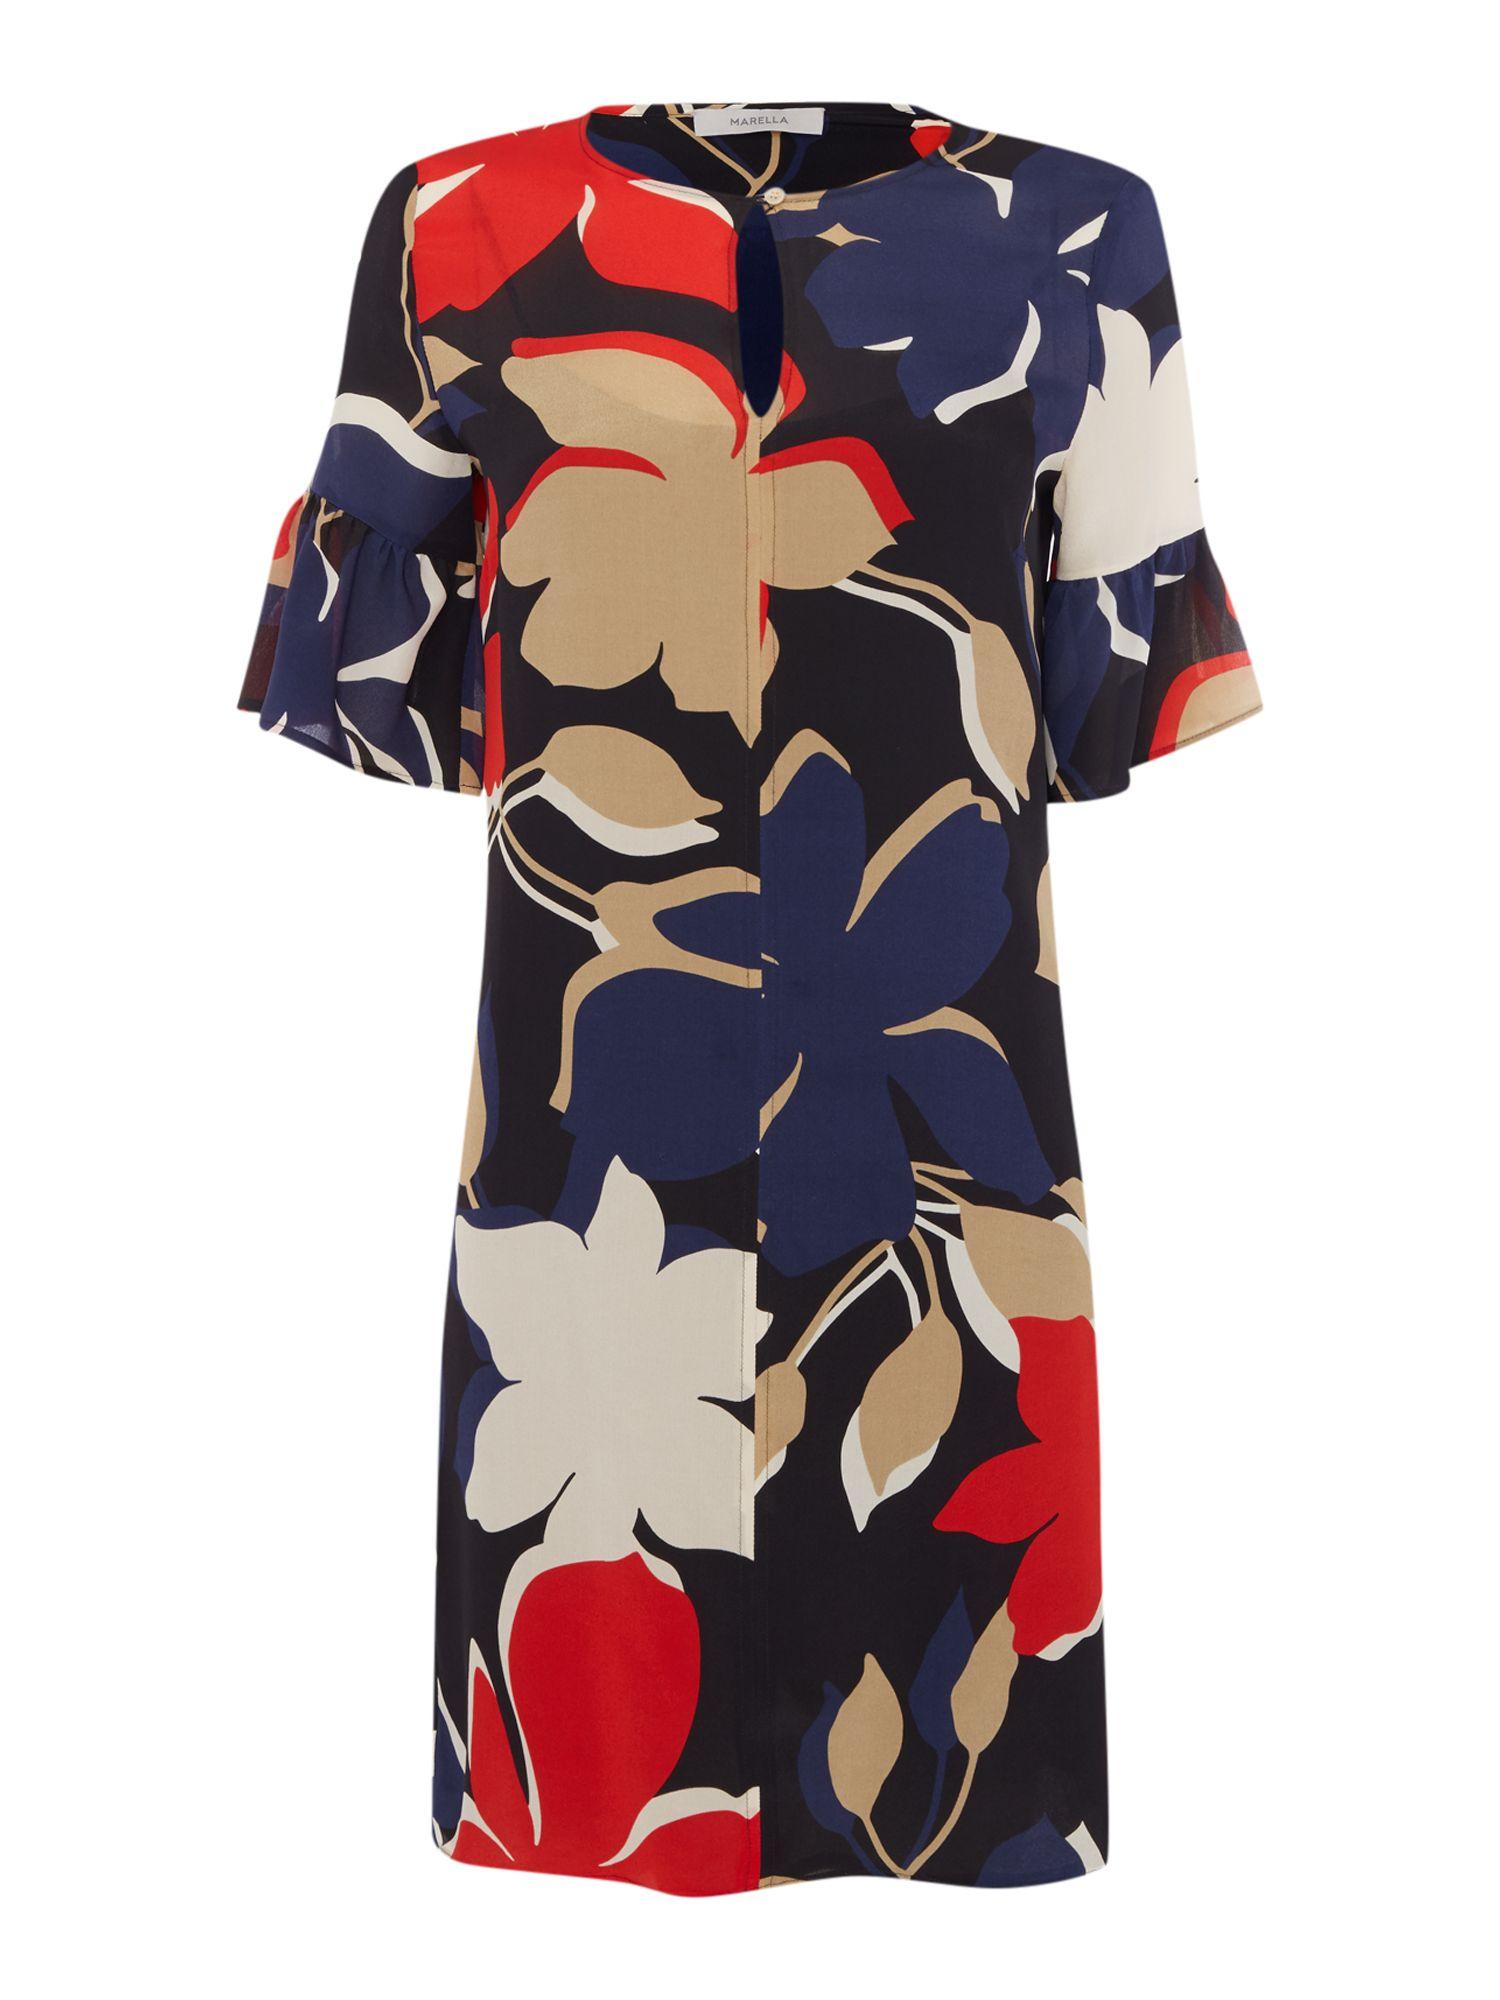 Marella ALARE bold floral print bell sleeve shift dress, Red